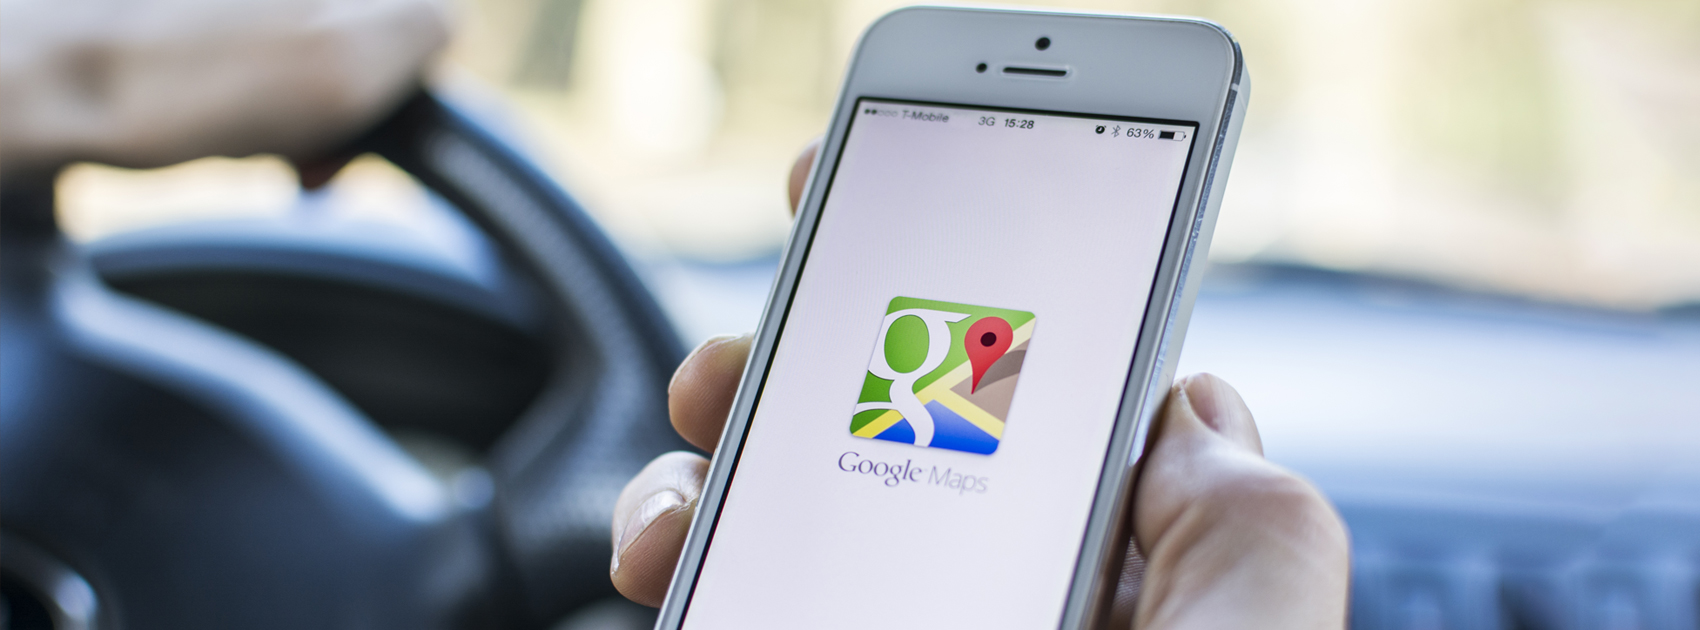 Google Maps To Test New Safety Feature For Cabs,Startup Stories,2019 Technology Latest News,Google Maps New Safety Feature,Cabs Google Maps,Google Maps New Feature For Cabs,Google Maps New Feature,Google Maps Safety Alert Feature,Google Maps Safety Feature For Taxi